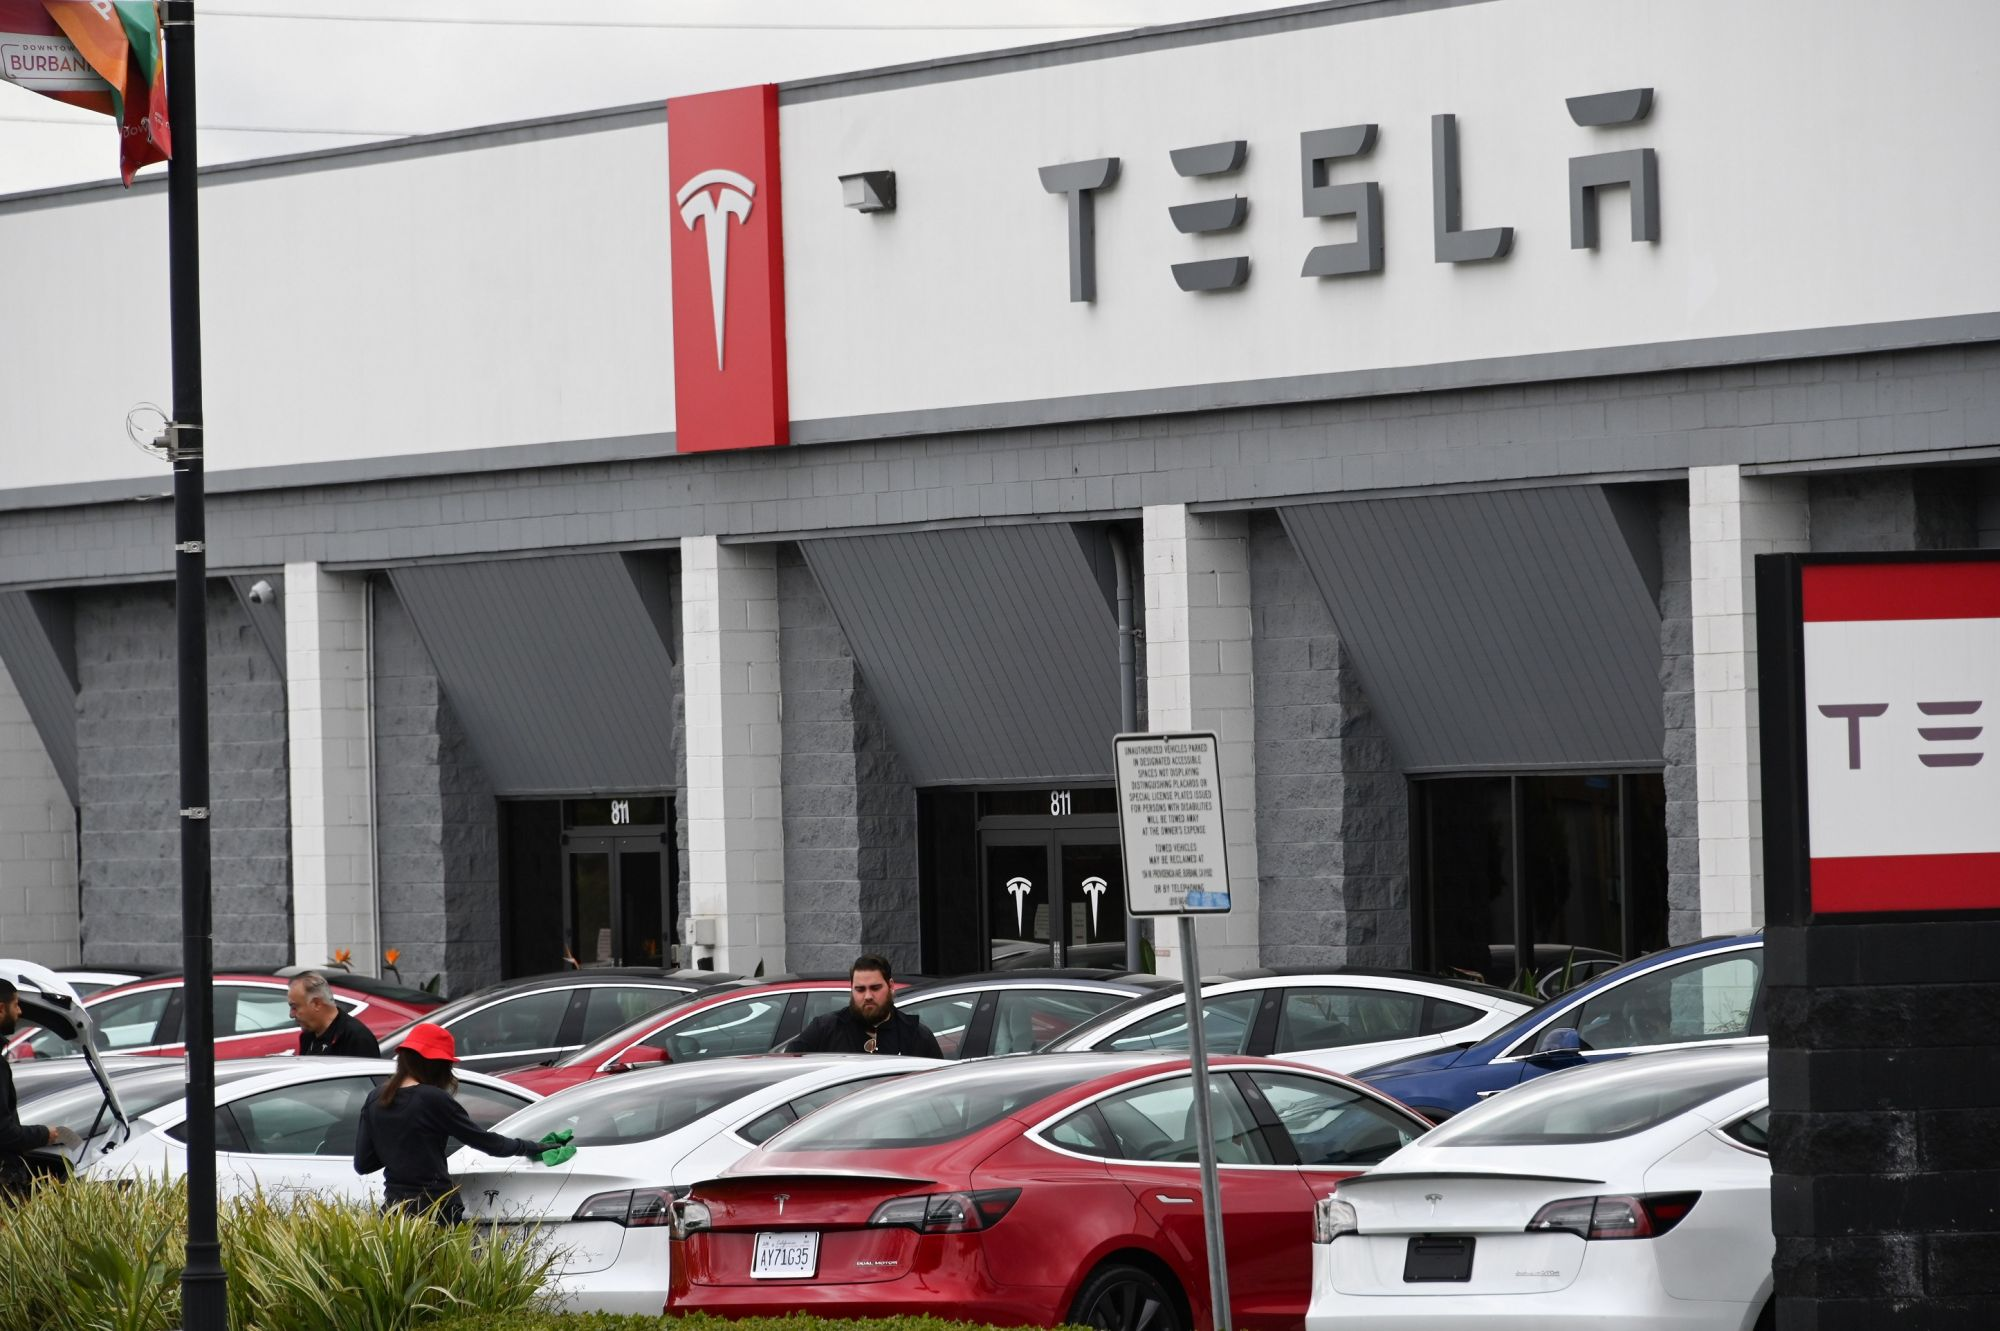 Telsa employees work outside a Tesla showroom in Burbank, California, March 24, 2020. - Luxury electric car maker Tesla ended up closing its California plant in Fremont, a concession by its maverick head Elon Musk after a drawn-out standoff with the state authorities over the spread of the virus. (Photo by Robyn Beck / AFP)